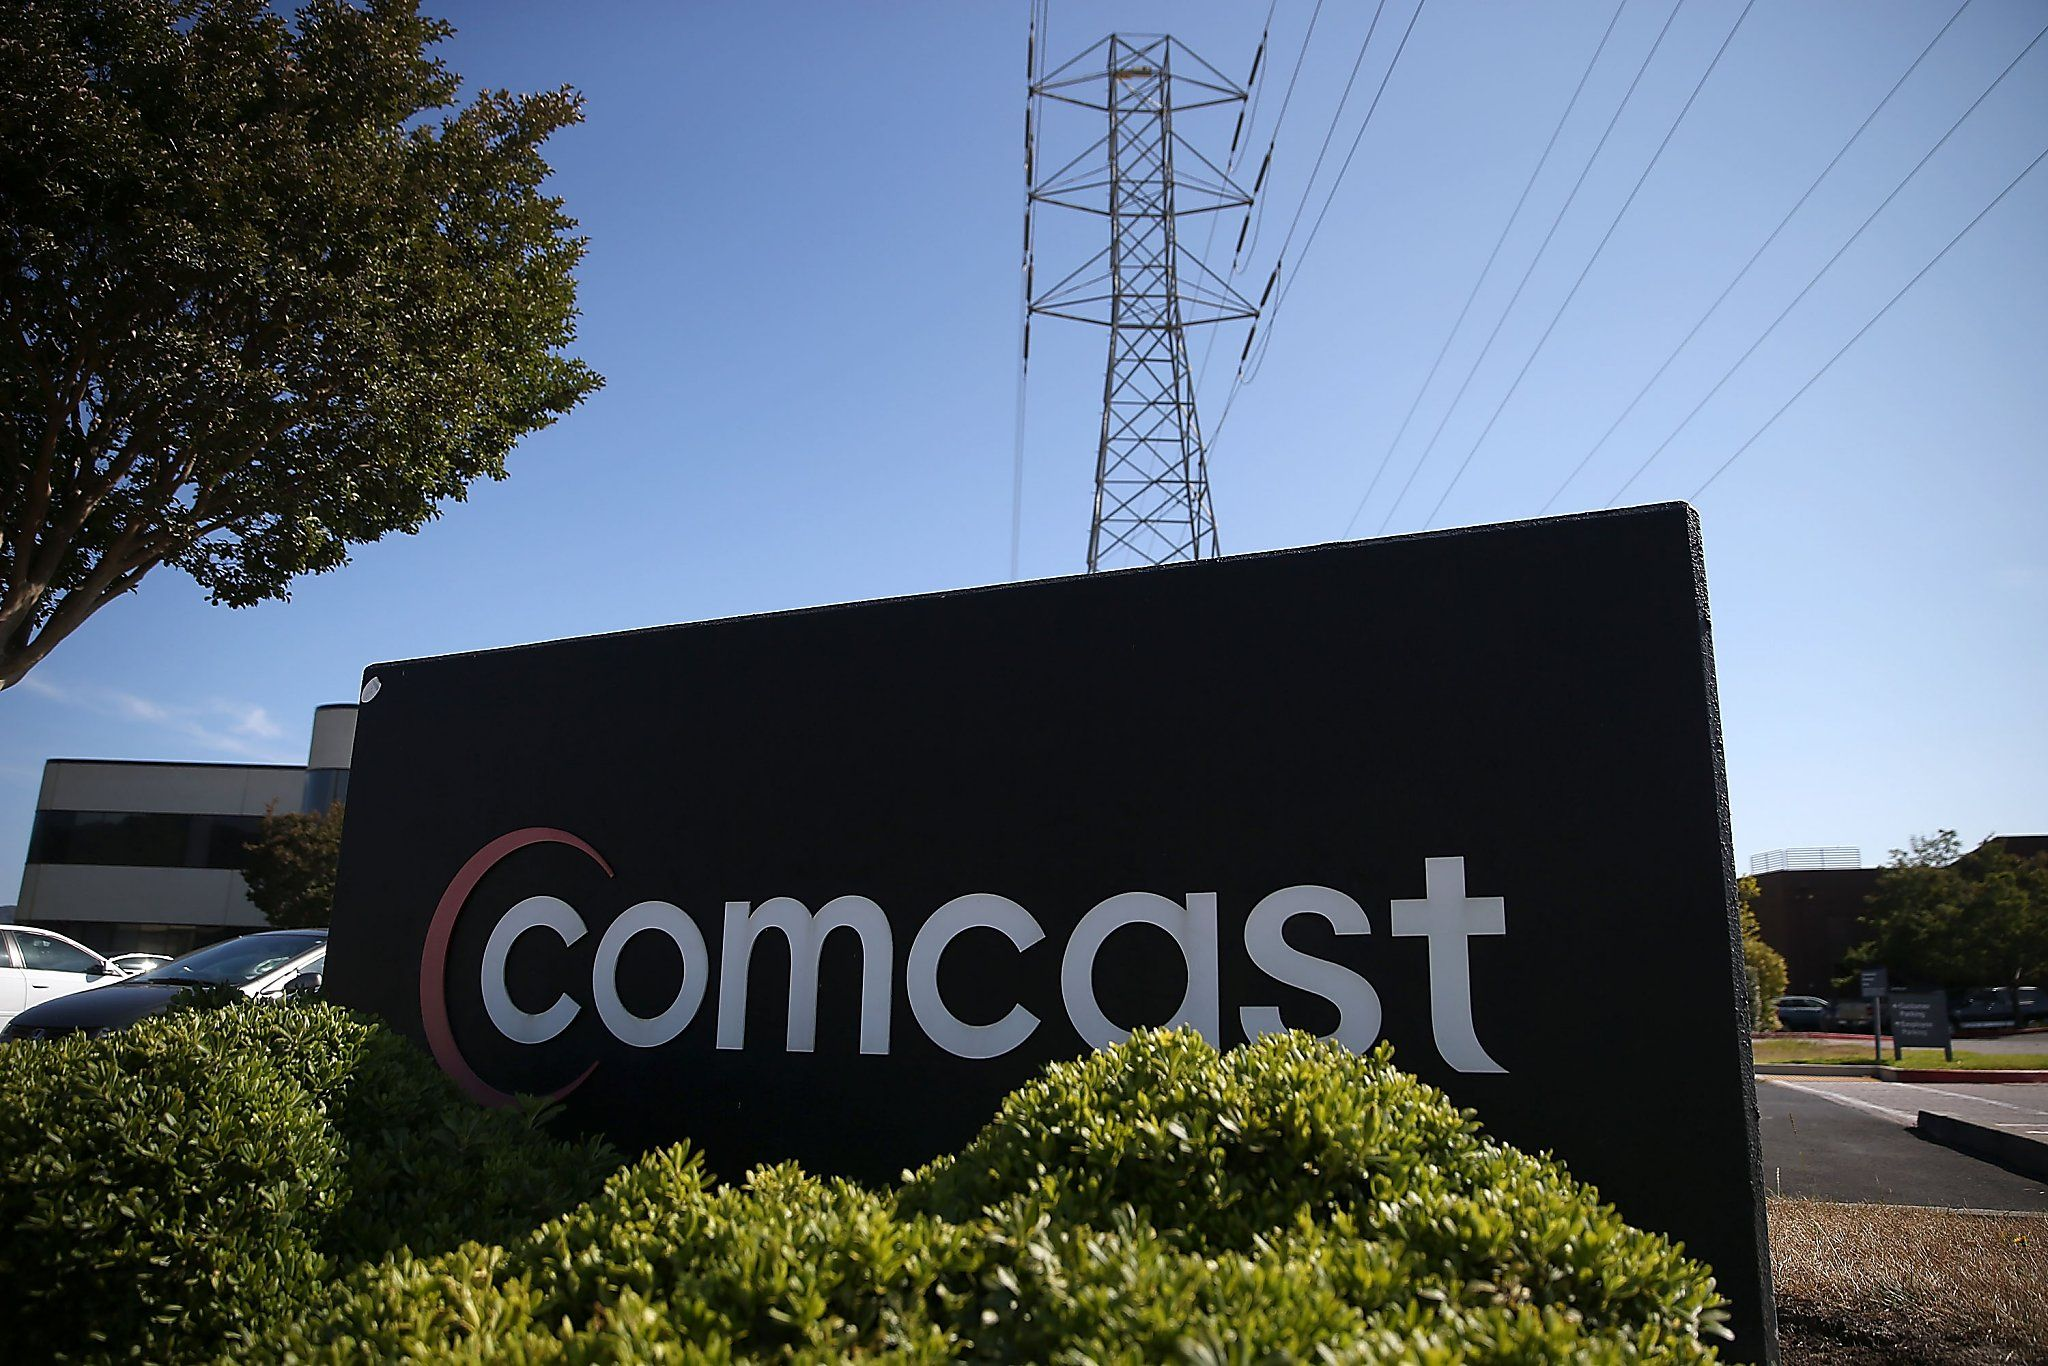 Comcast to pay 26 million for illegally dumping old